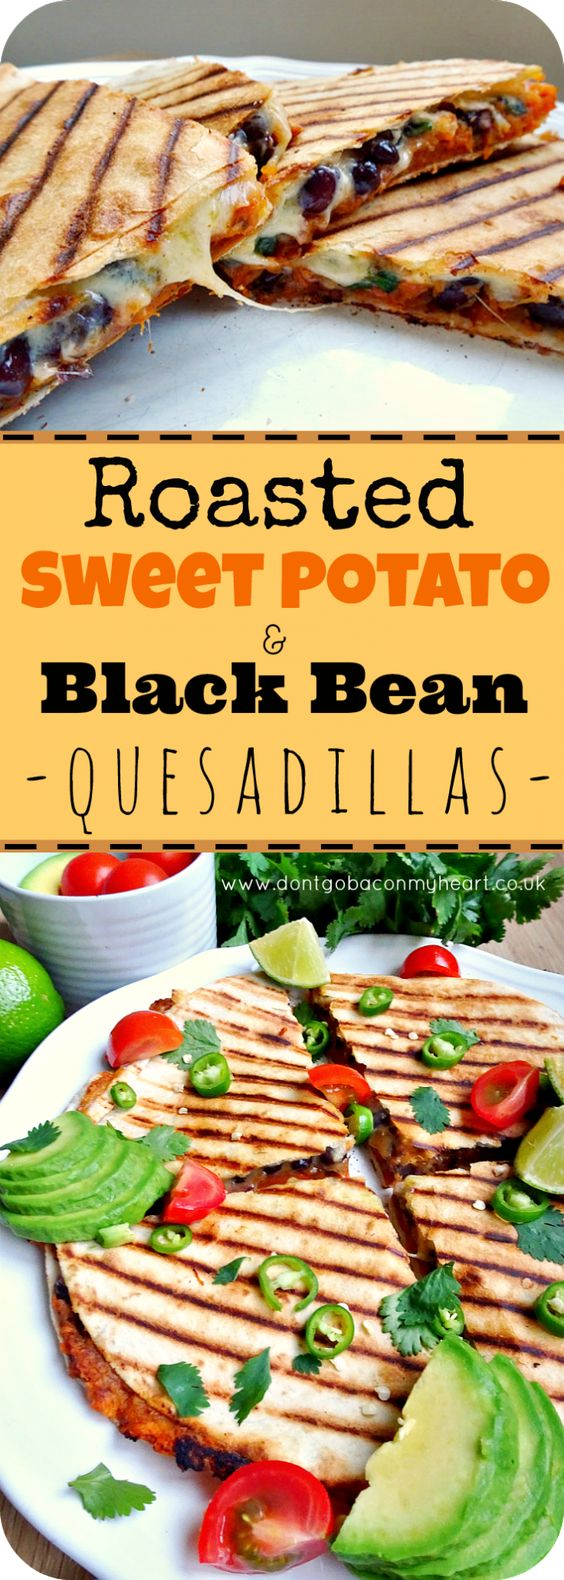 Roasted Sweet Potato and Black Bean Quesadillas #sweetpotato #potatoes #blackbeen #quesadillas #vegetarianrecipes